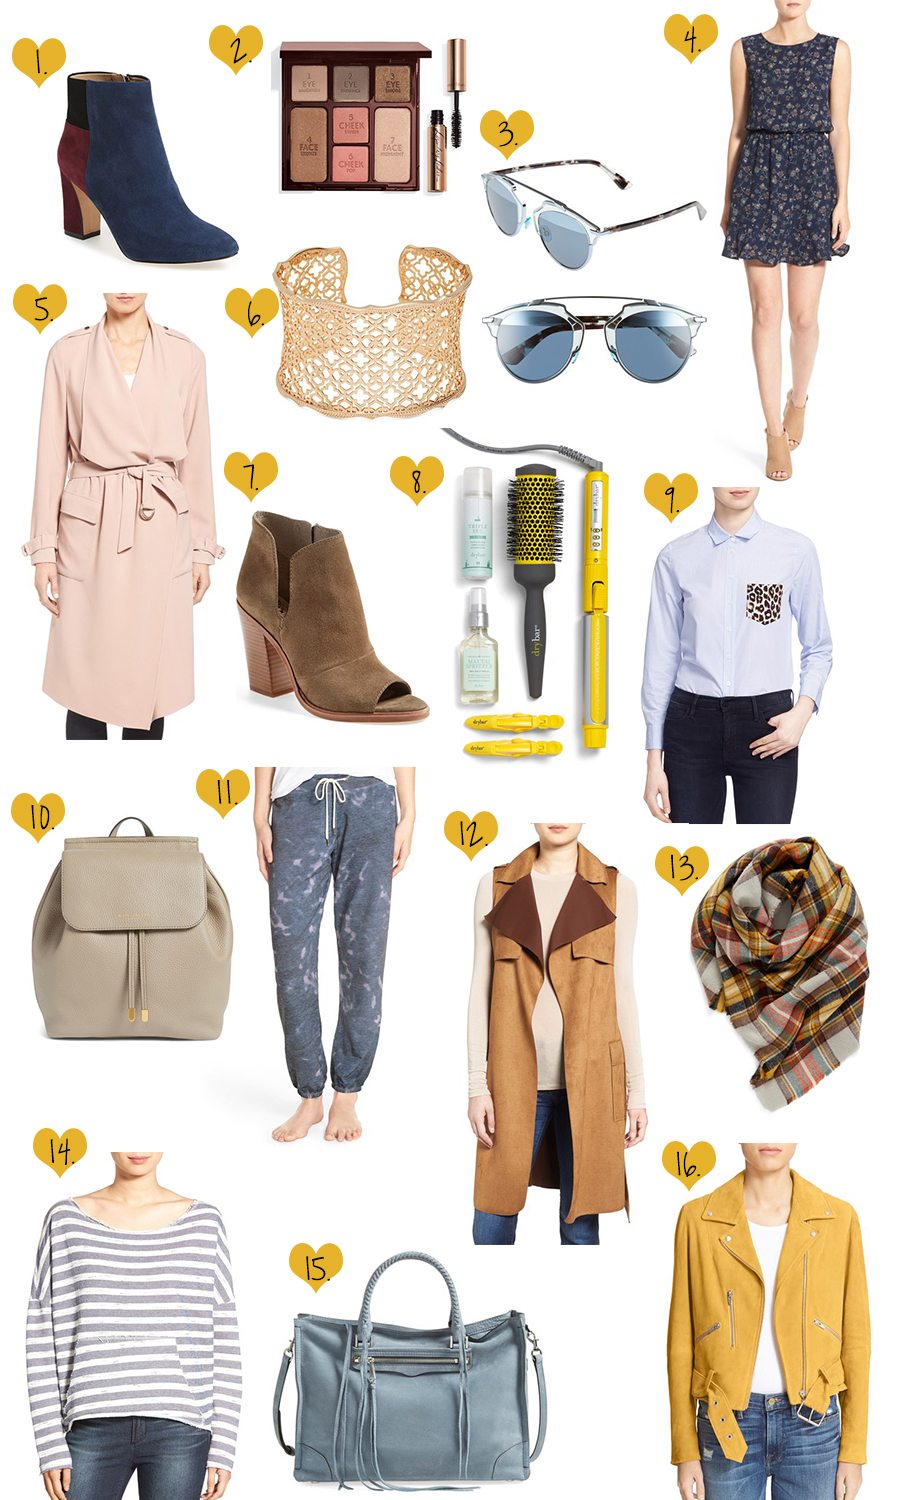 NSALE-picks-Nordstrom-Anniversary-Sale-Biggest-Sale-of-the-year-Fall-Fashion-Have-Need-Want